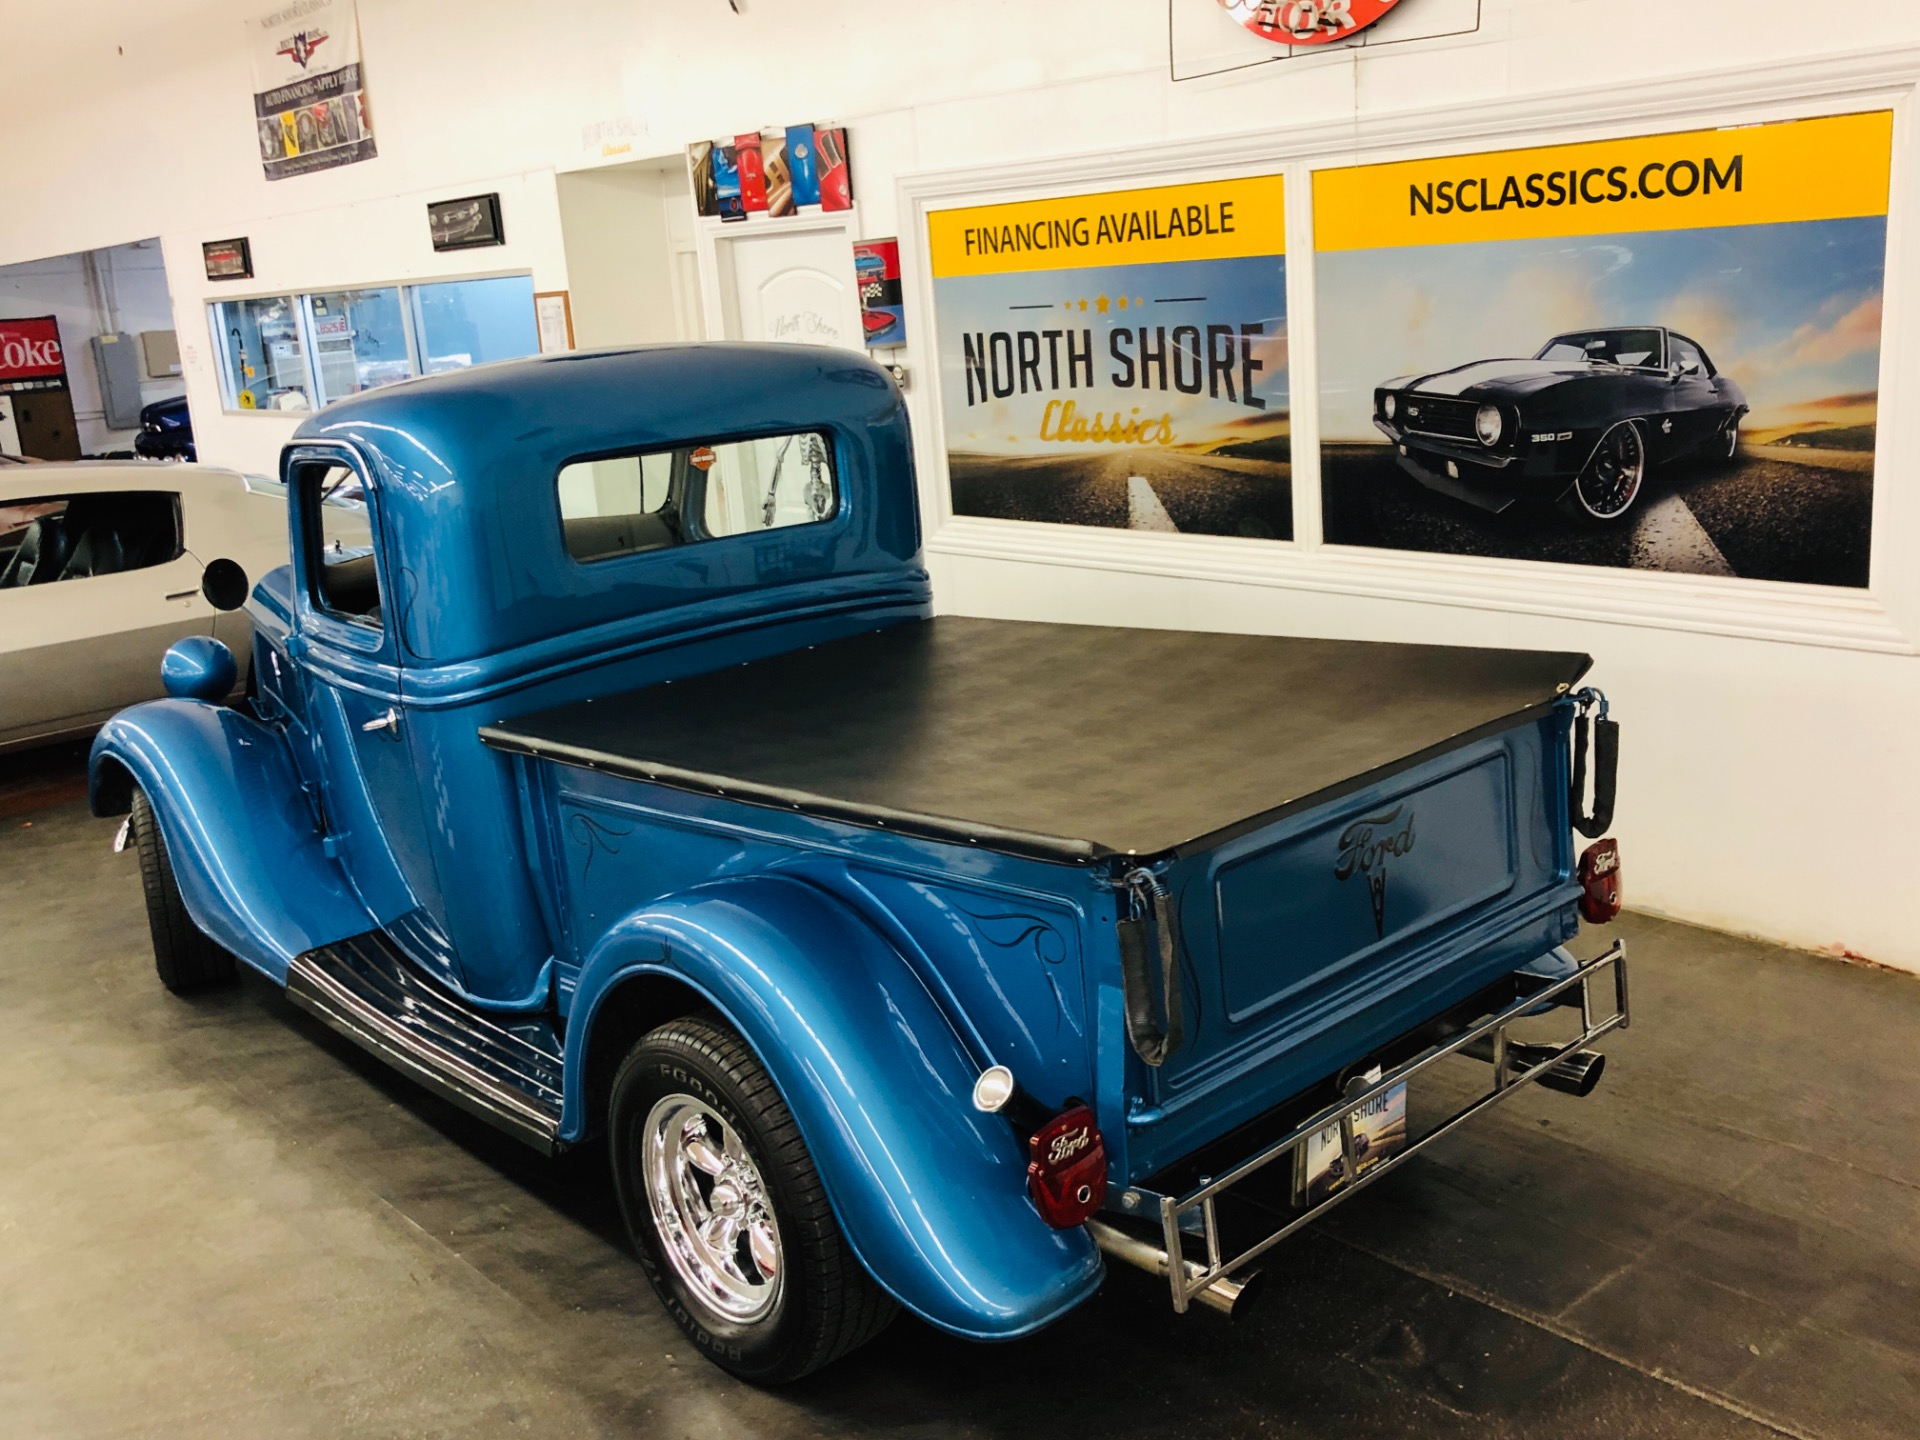 Used 1937 Ford Pickup - HOT ROD TRUCK - 327 V8 - VERY CLEAN BODY - NICE PAINT - SEE VIDEO | Mundelein, IL